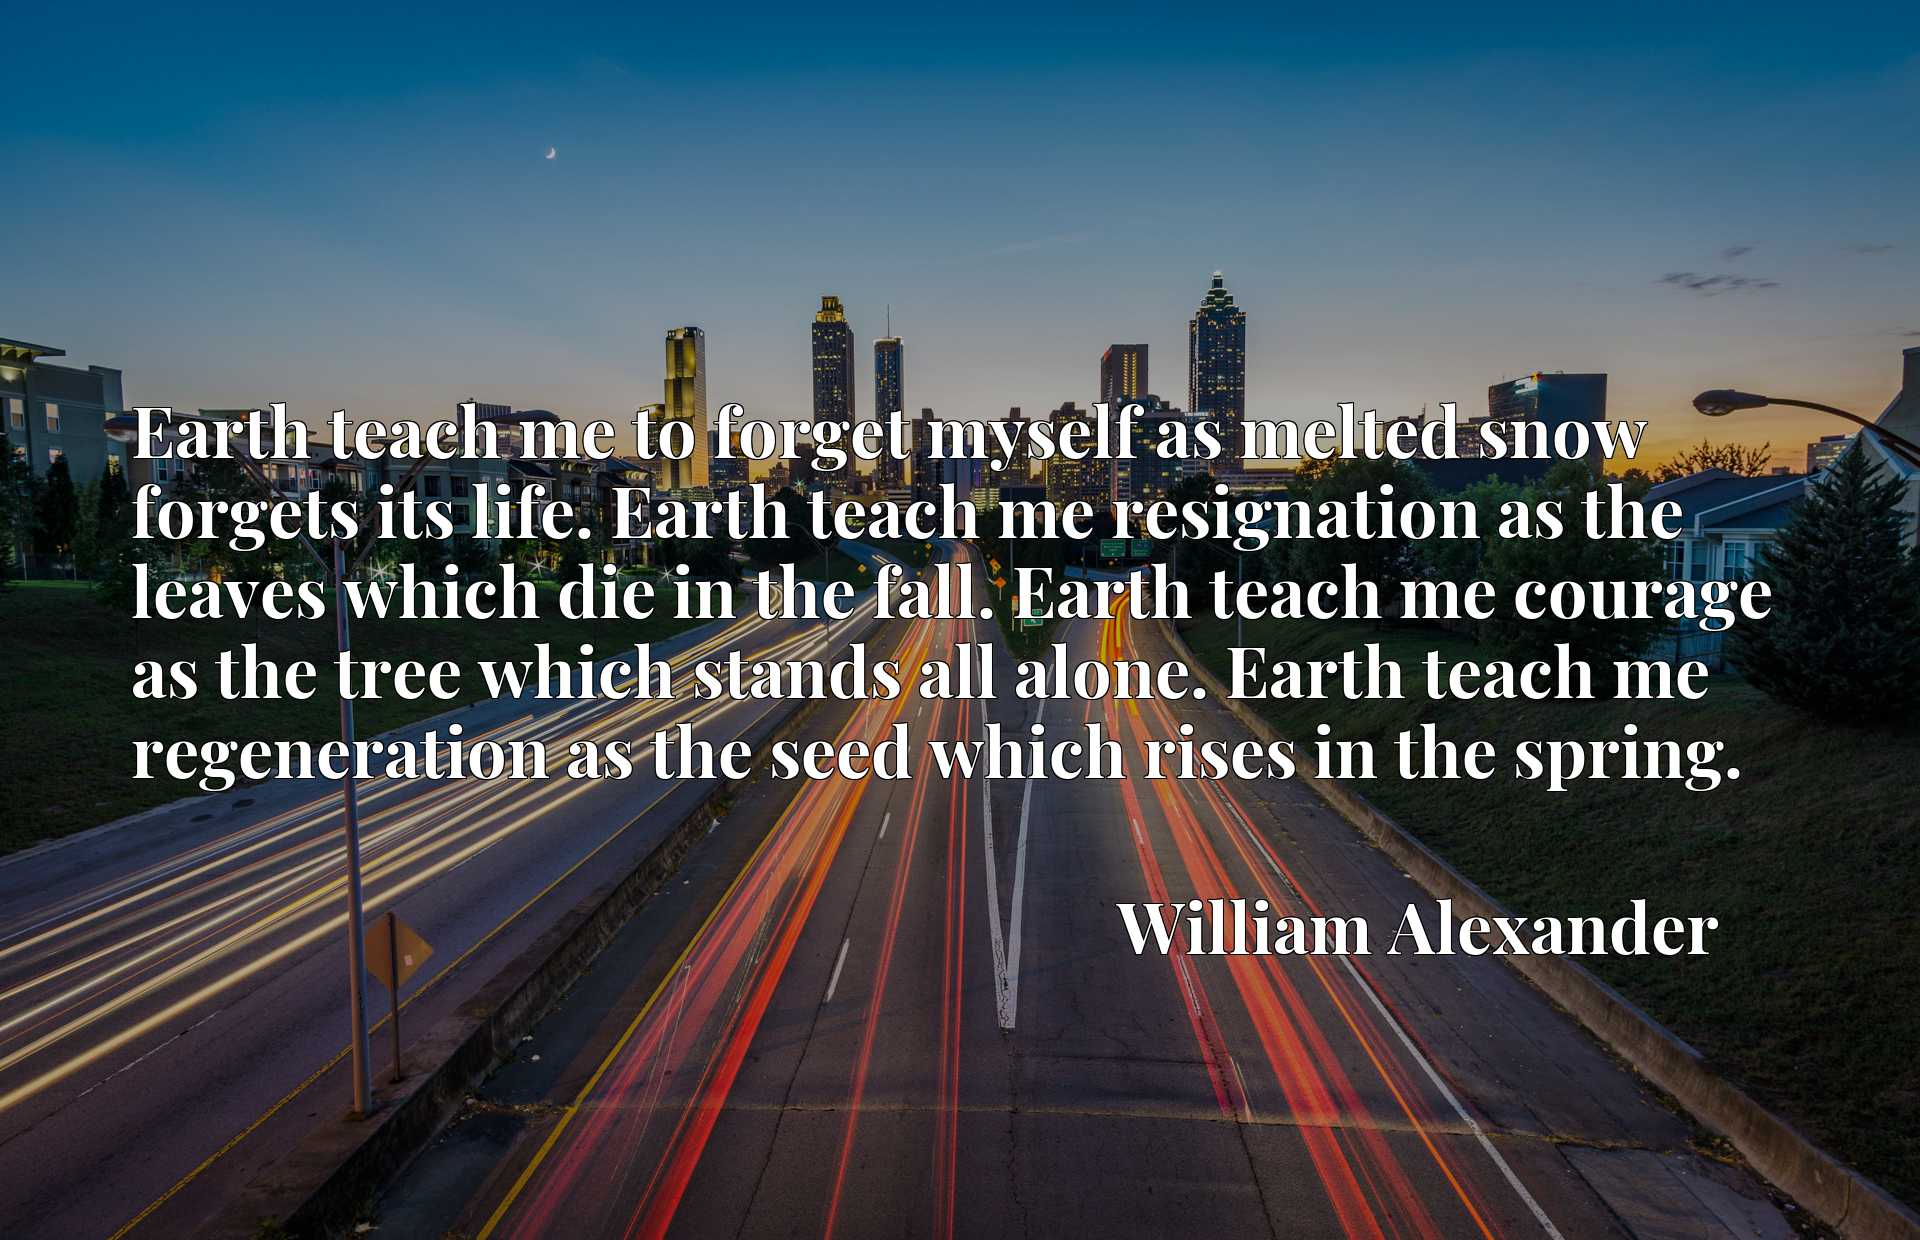 Earth teach me to forget myself as melted snow forgets its life. Earth teach me resignation as the leaves which die in the fall. Earth teach me courage as the tree which stands all alone. Earth teach me regeneration as the seed which rises in the spring.